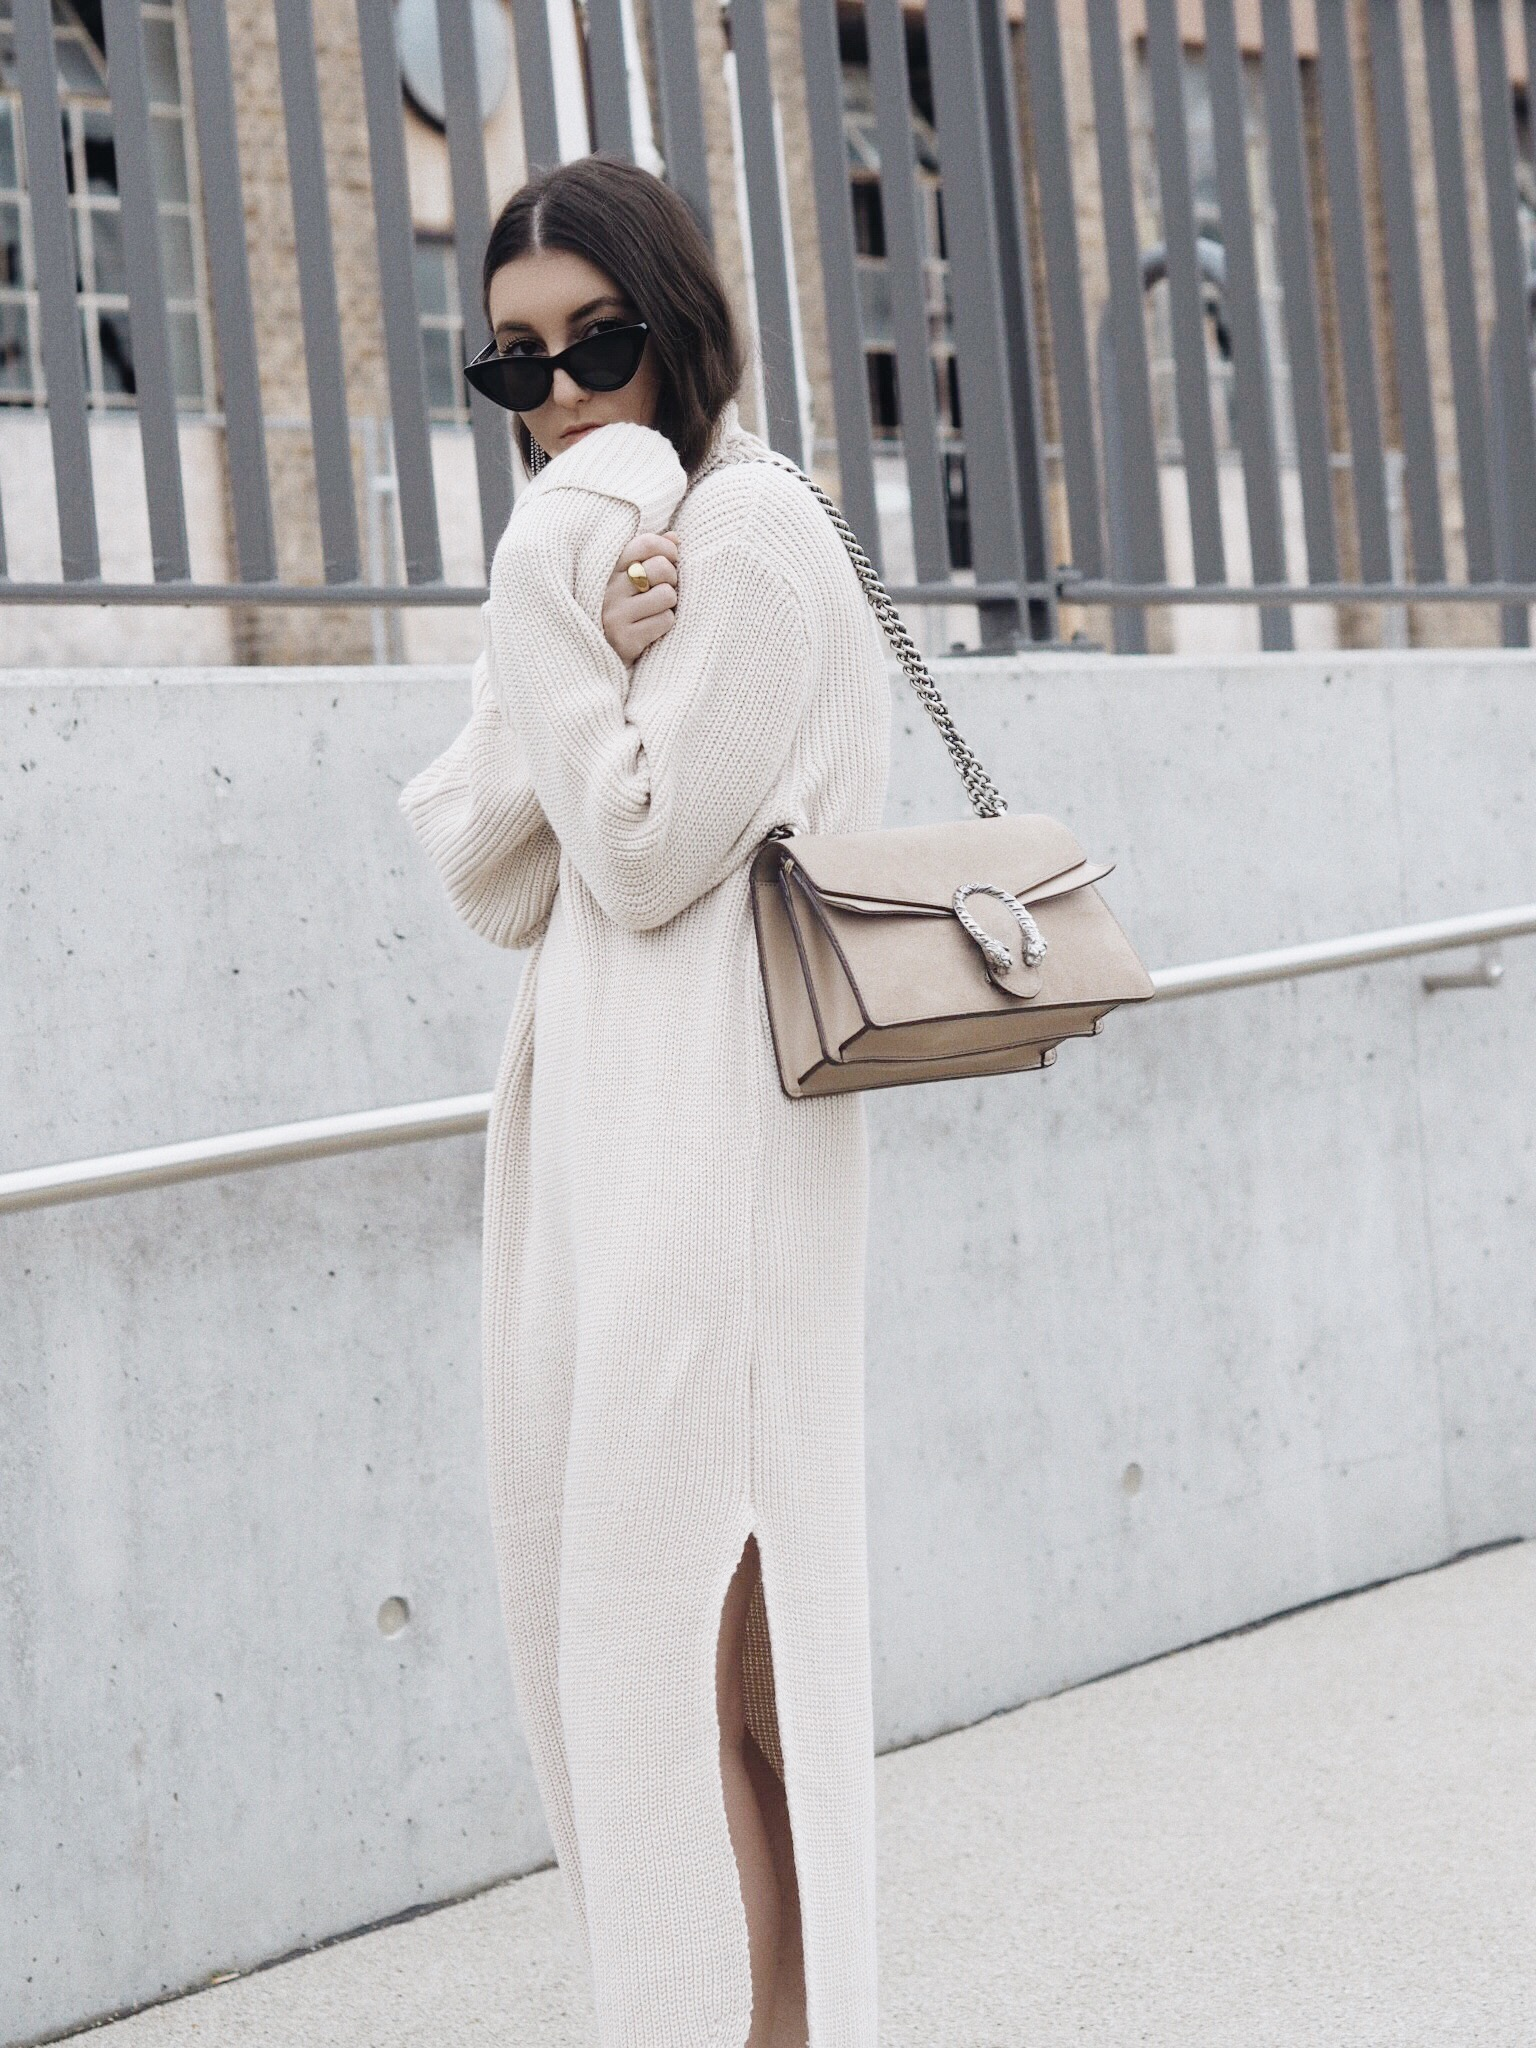 LATEST OBSESSION: KNITTED DRESSES